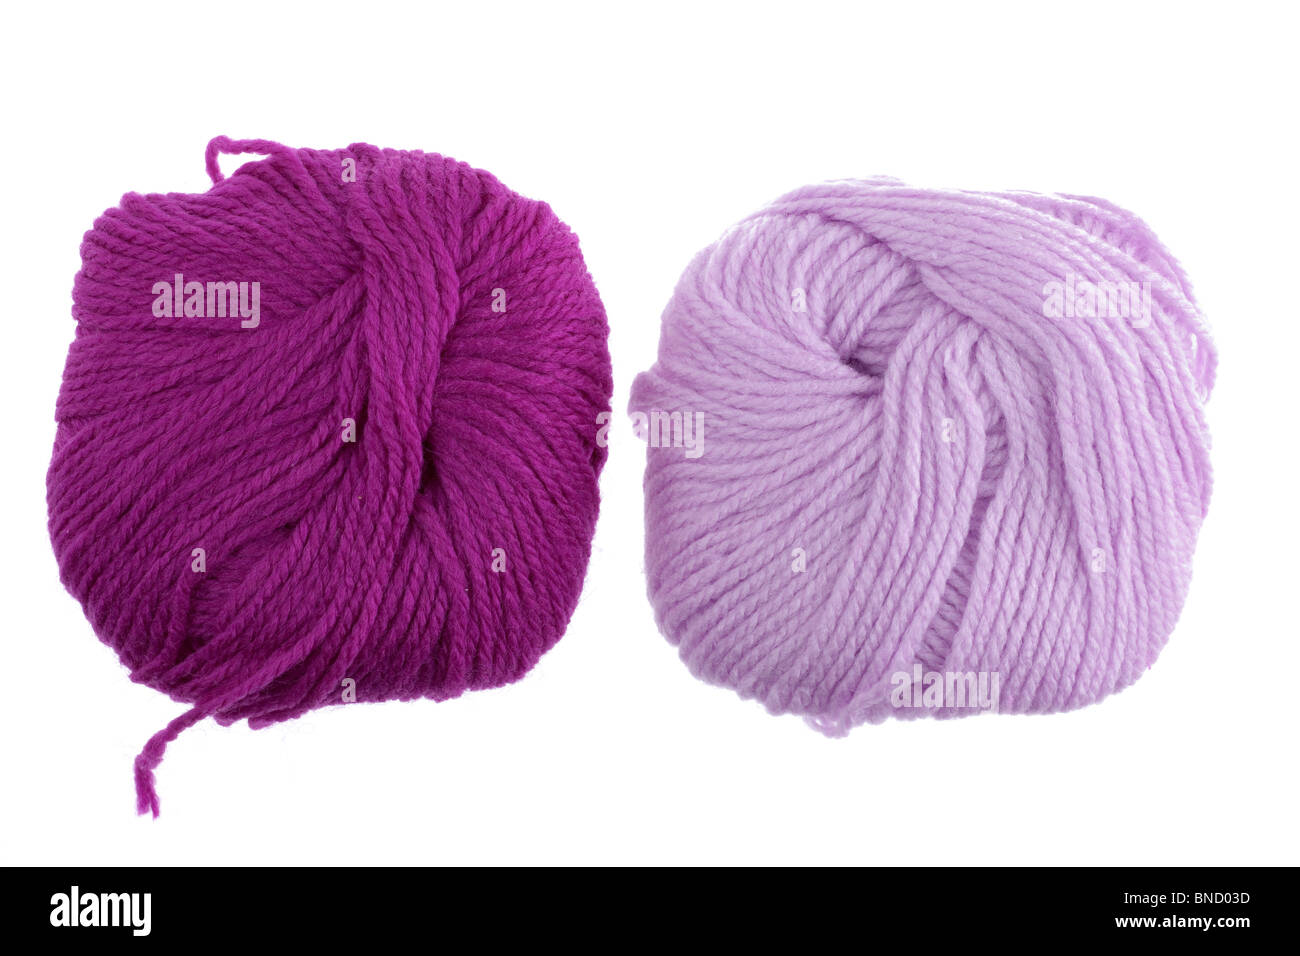 Two balls of wool - Stock Image